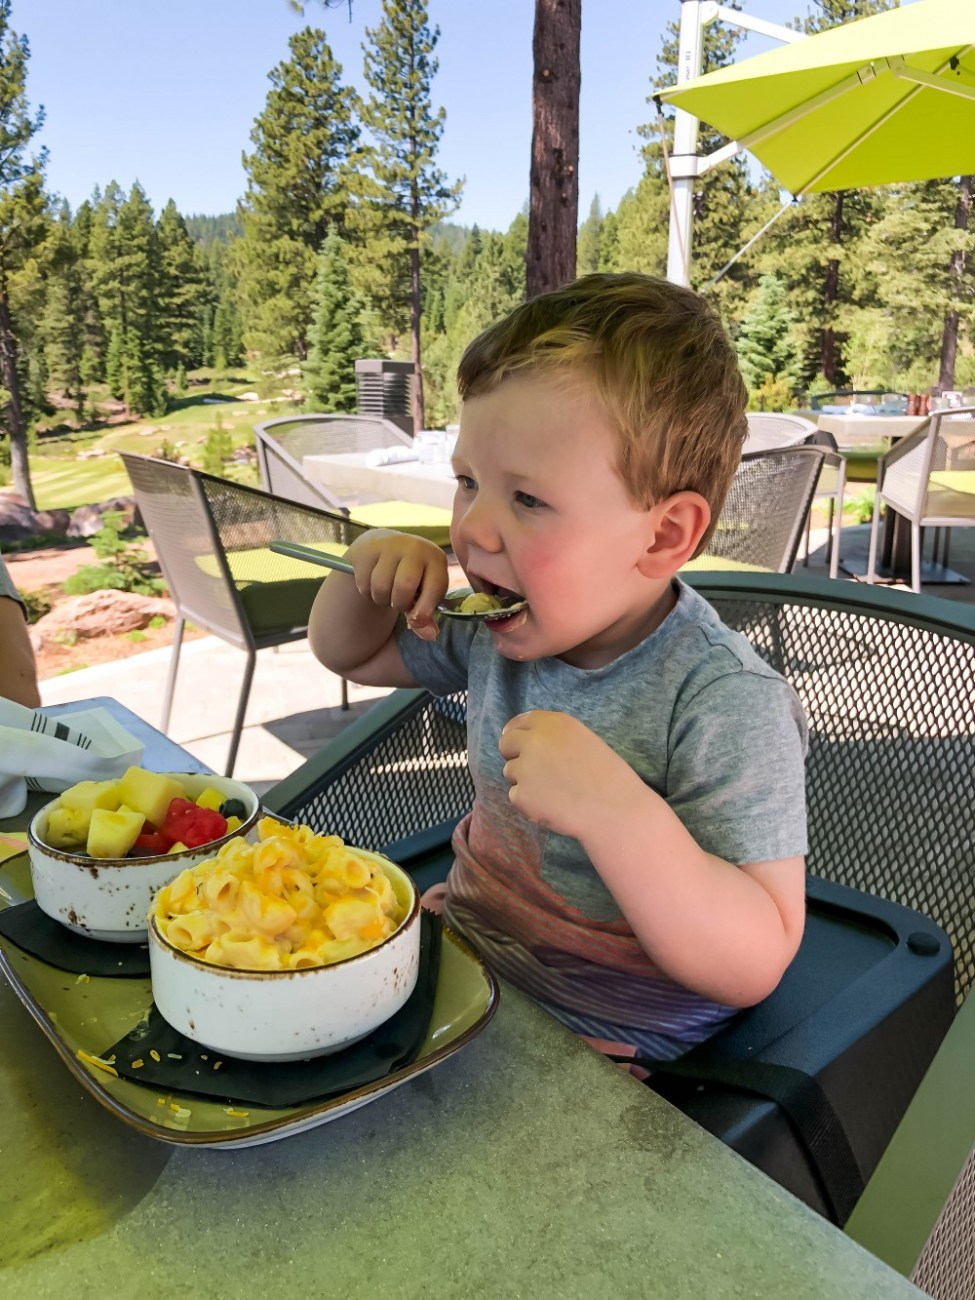 Family trip to North Lake Tahoe. Sharing all the family friendly activities we did over a long weekend vacation to Northstar. Head over to the post to give it a read and pin this so you're ready for your next family trip to Tahoe! #northlaketahoe #familytravel #donnerlake #northstar #familytravelblog